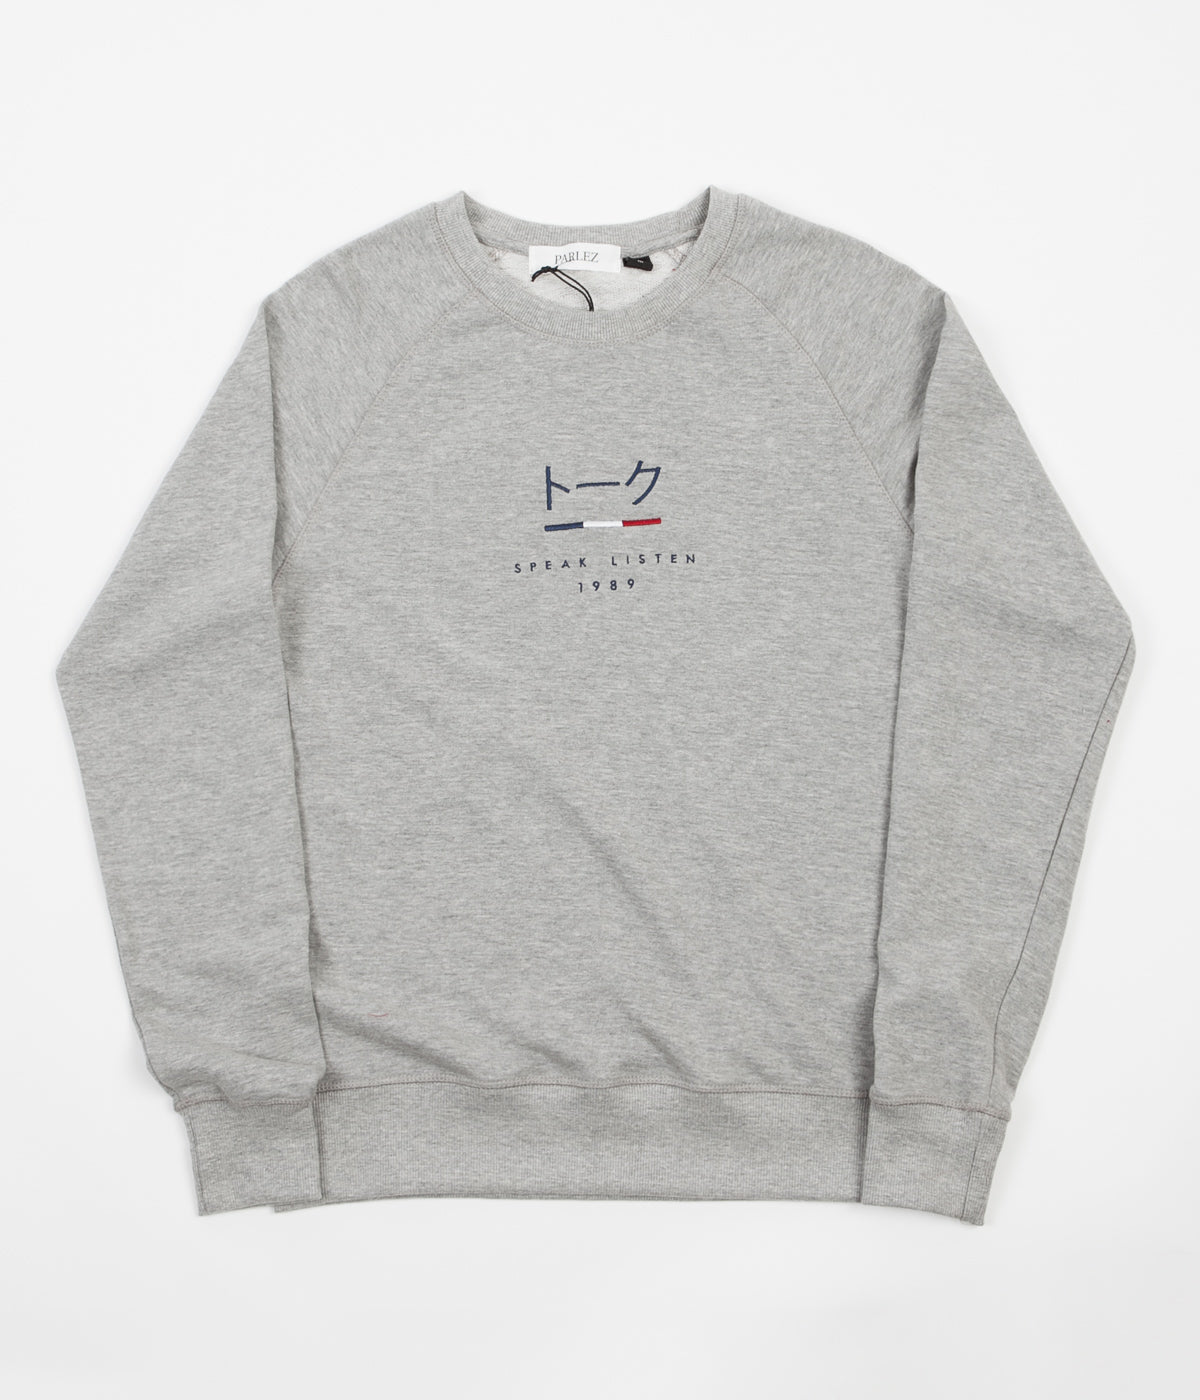 Parlez Kiku Crewneck Sweatshirt - Heather Grey